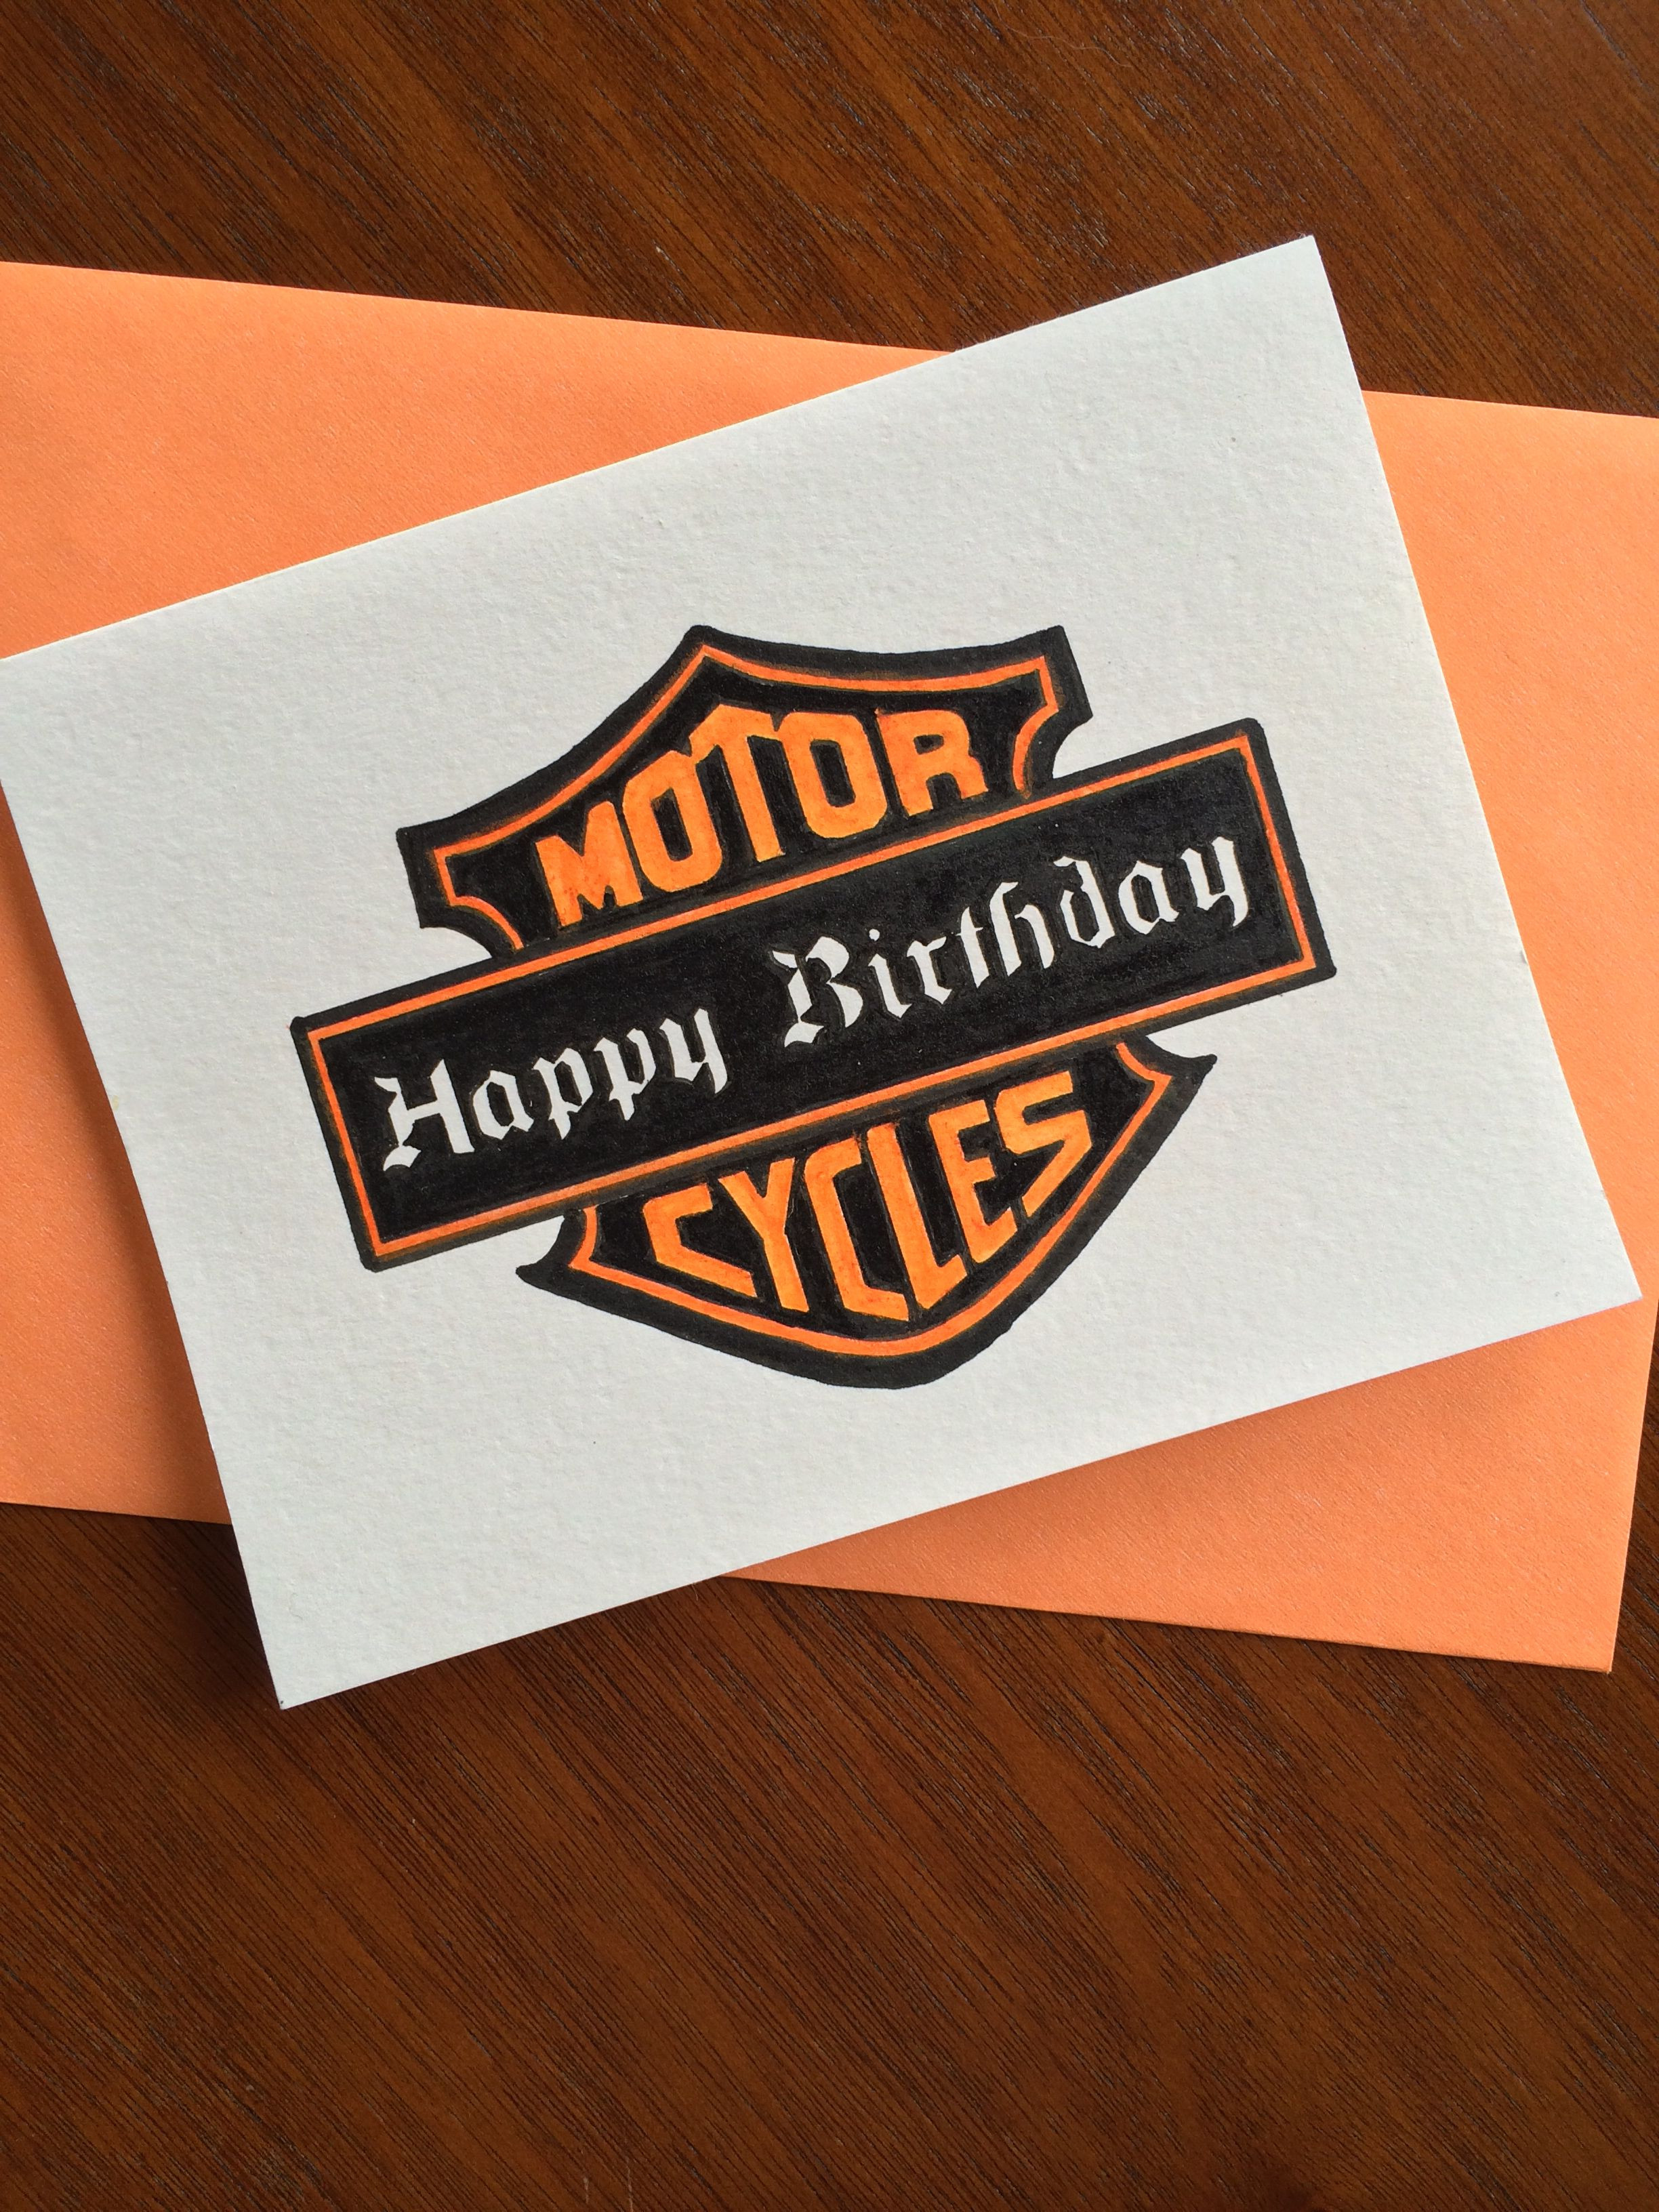 harley davidson birthday cards printable ; birthday-design-inspirational-handmade-greeting-card-by-fedele-design-harley-davidson-birthday-of-birthday-design